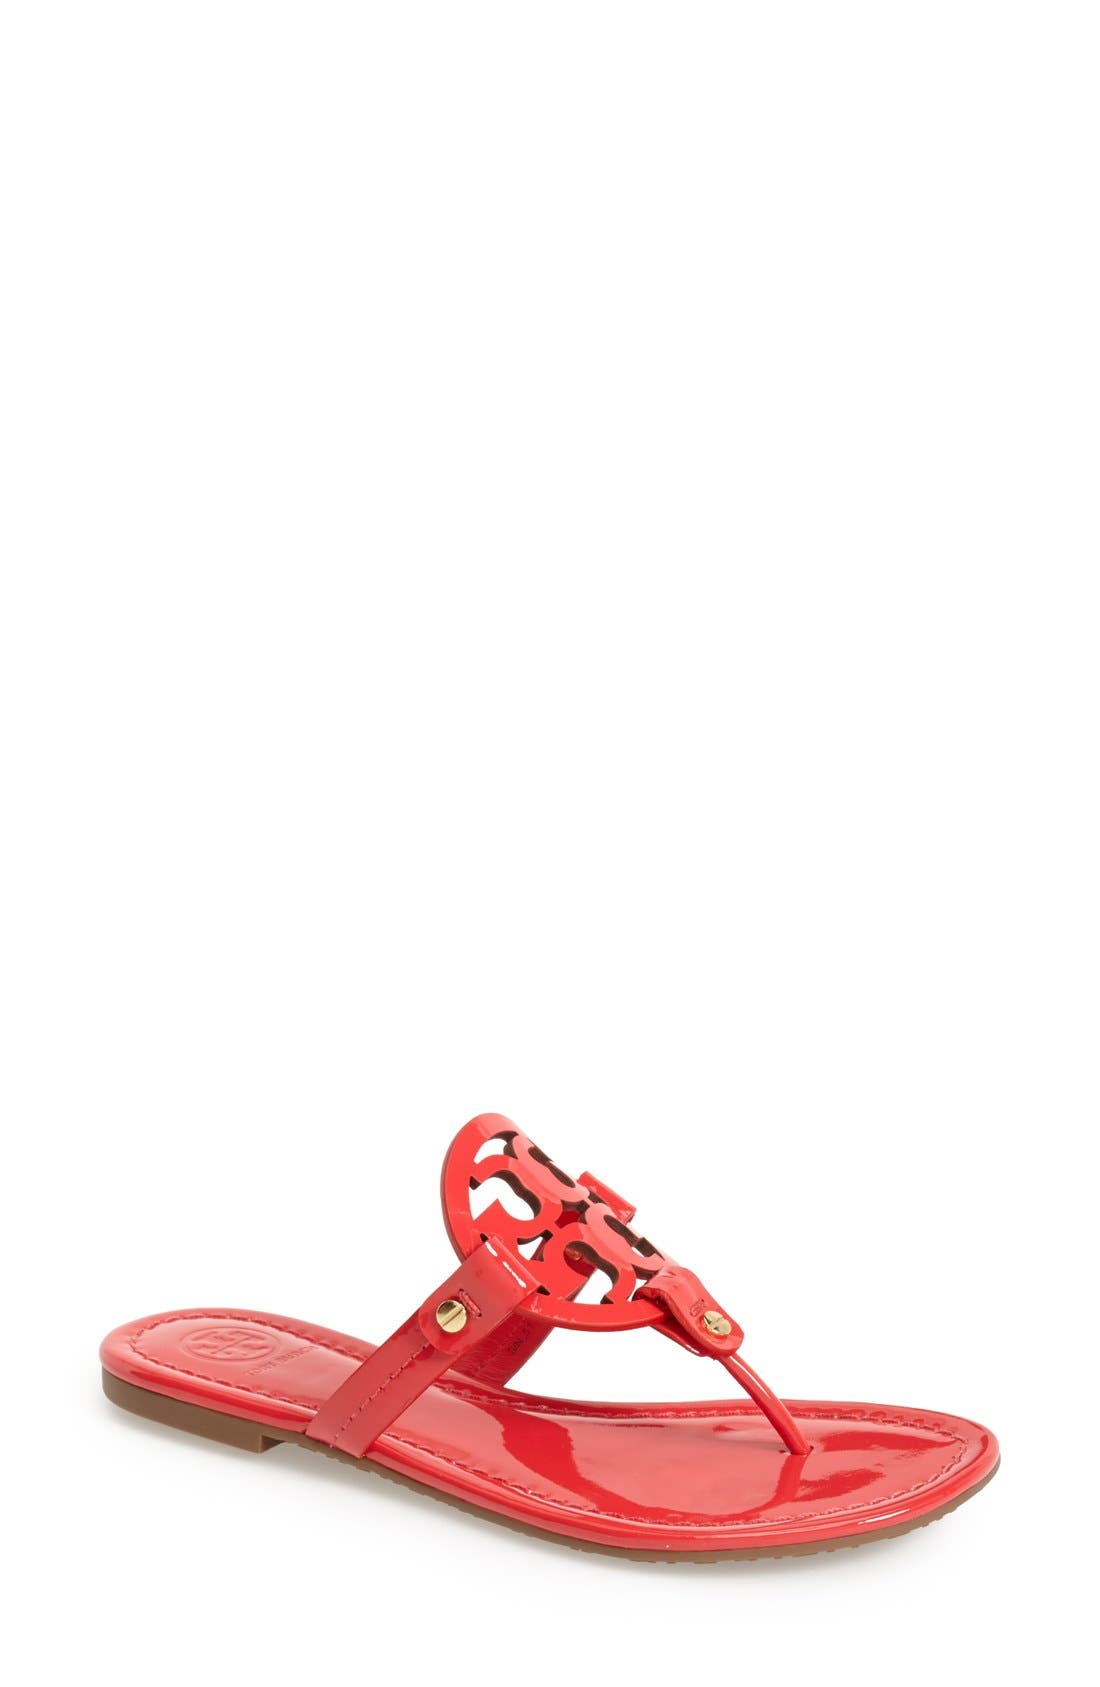 Main Image - Tory Burch 'Miller' Sandal (Women) (Nordstrom Exclusive)